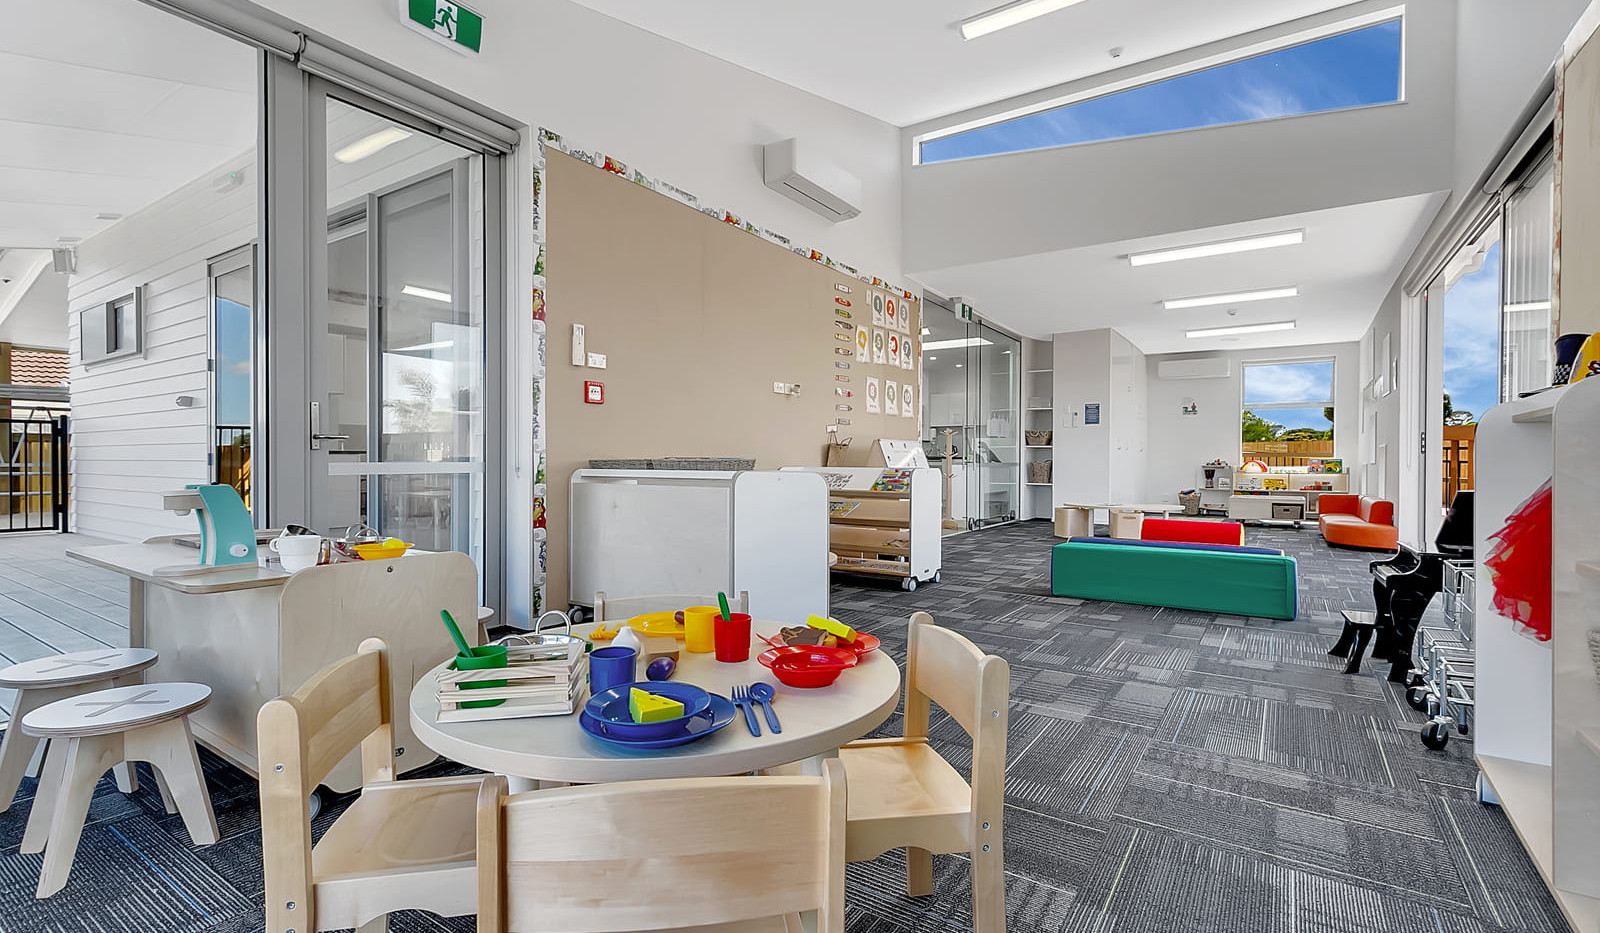 Clendon Kids Childcare Centre 21.jpg